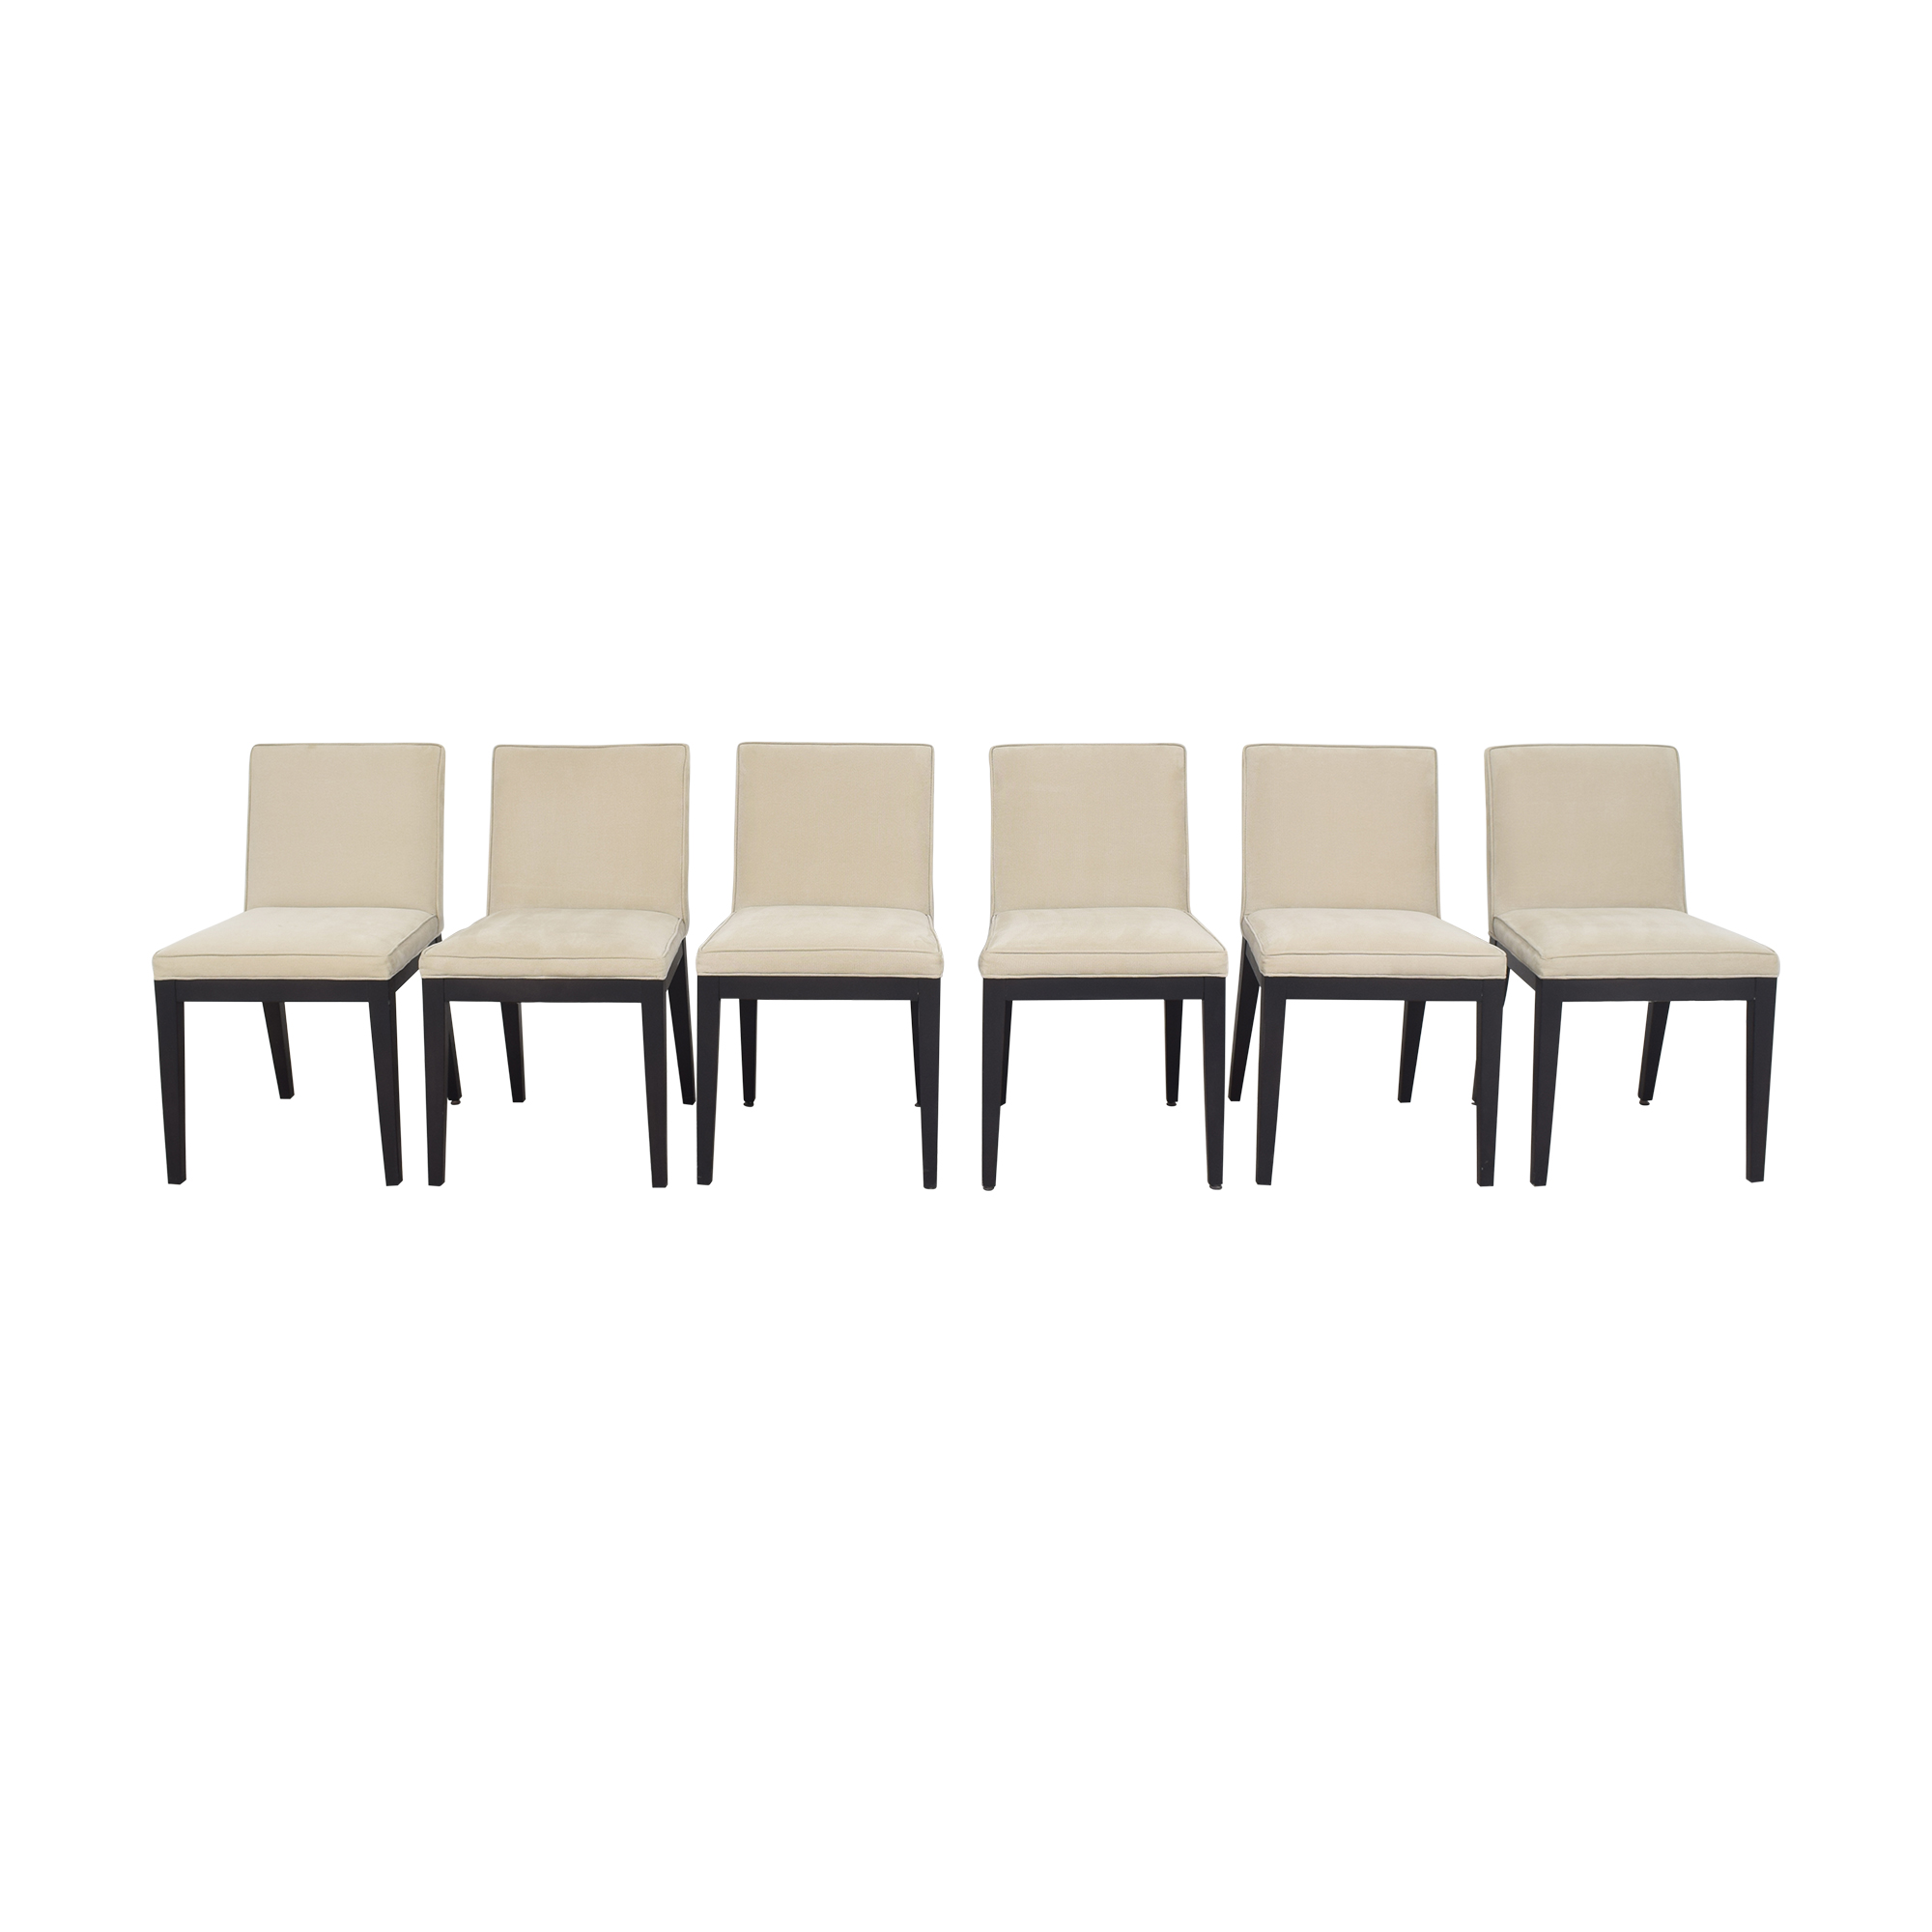 Room & Board Room & Board Ansel Dining Chairs discount